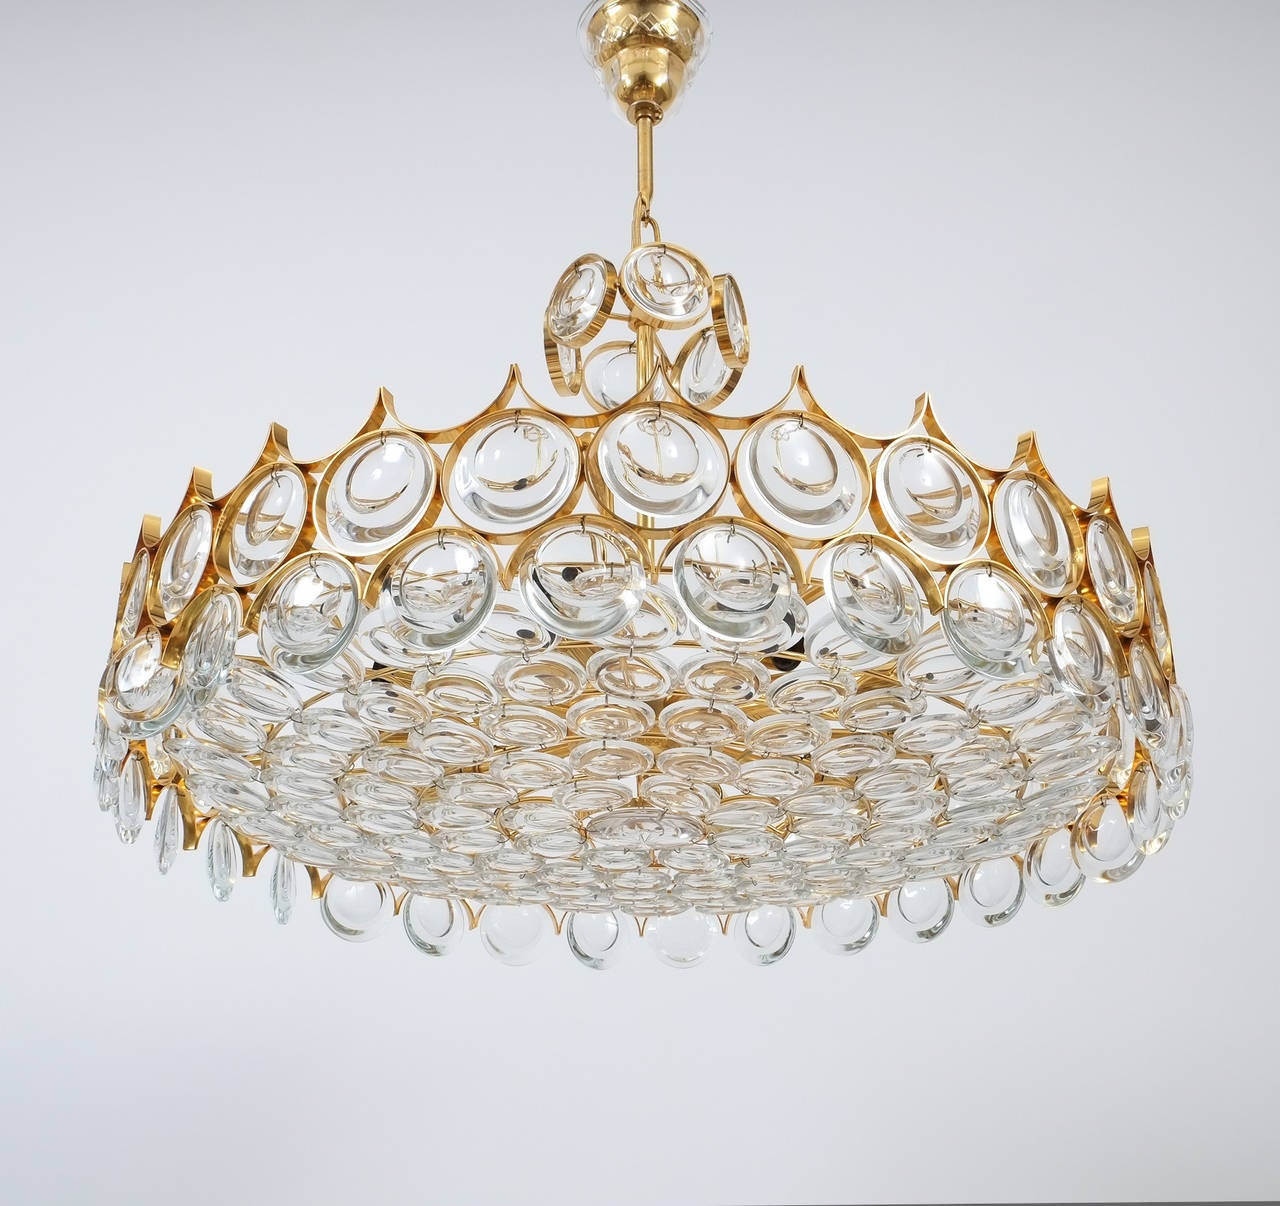 Palwa Gold Brass and Glass Large Chandelier Ceiling Lamp, 1960 For Sale 2